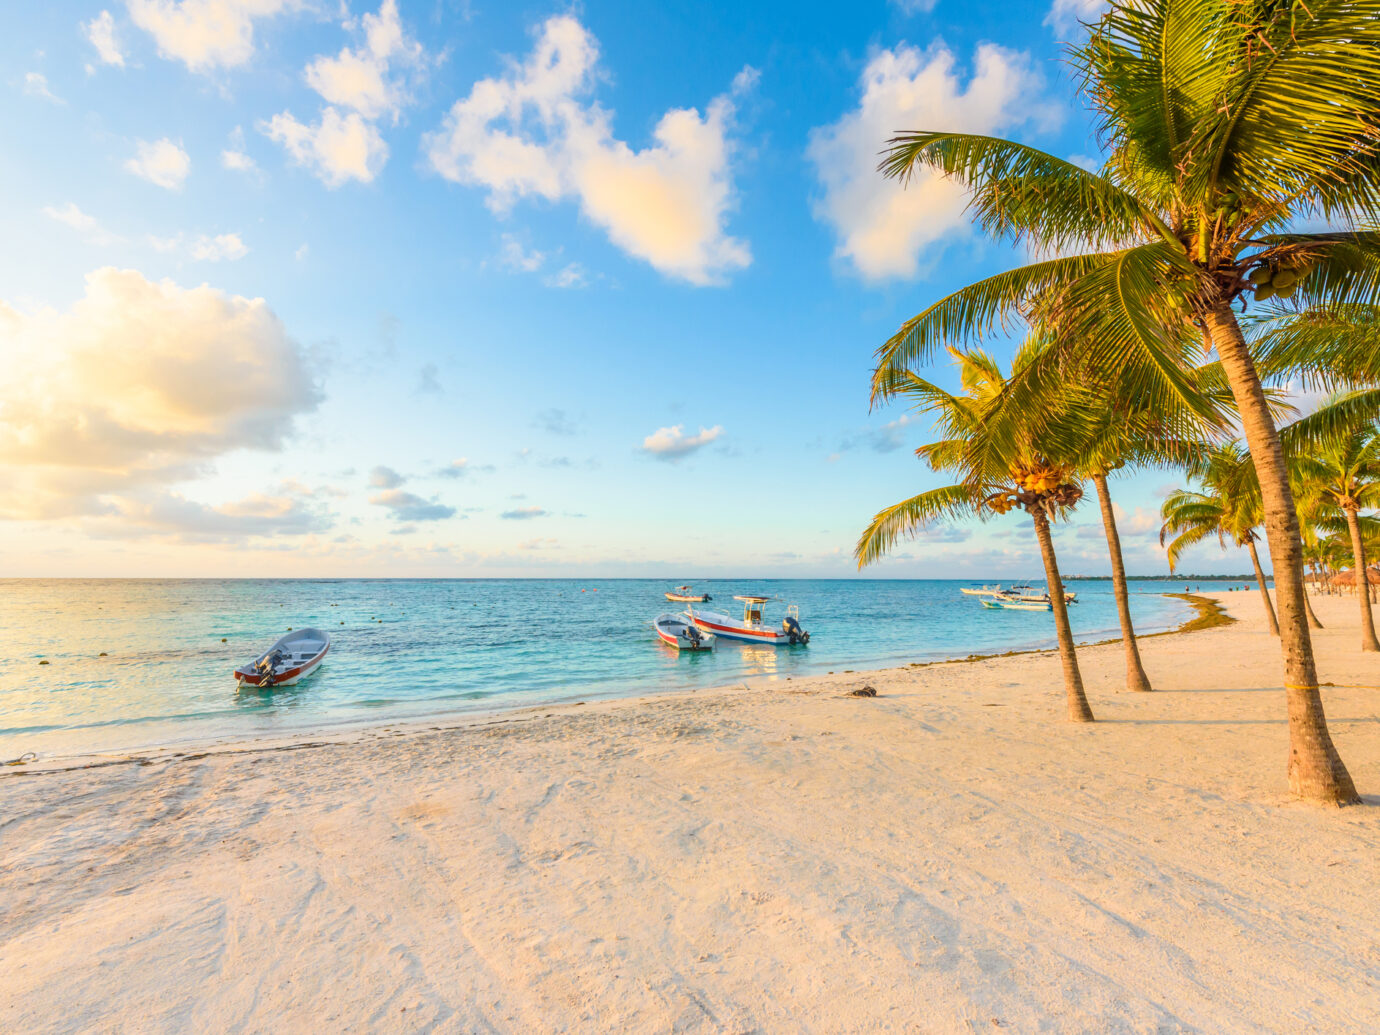 Sunrise at Akumal beach, paradise bay at Riviera Maya, caribbean coast of Mexico - travel destination for vacation